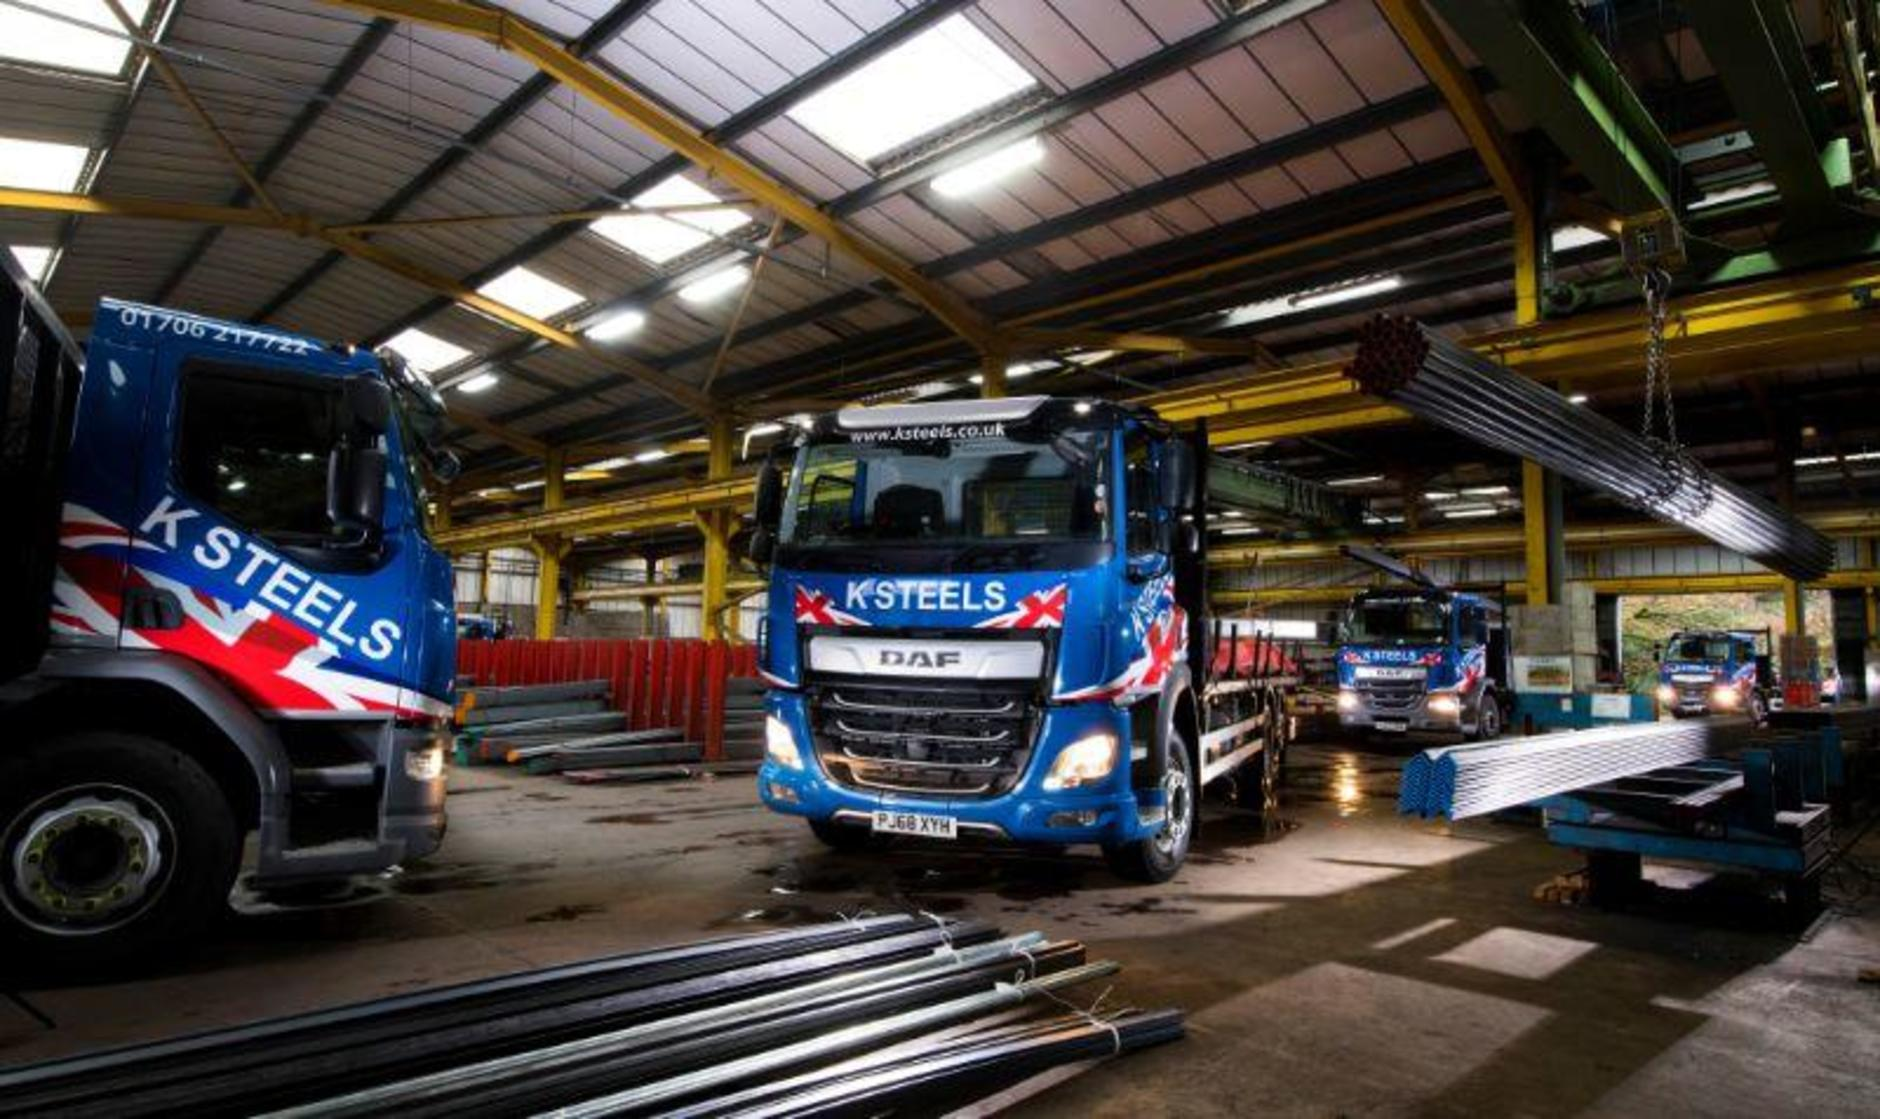 DAF K Steels